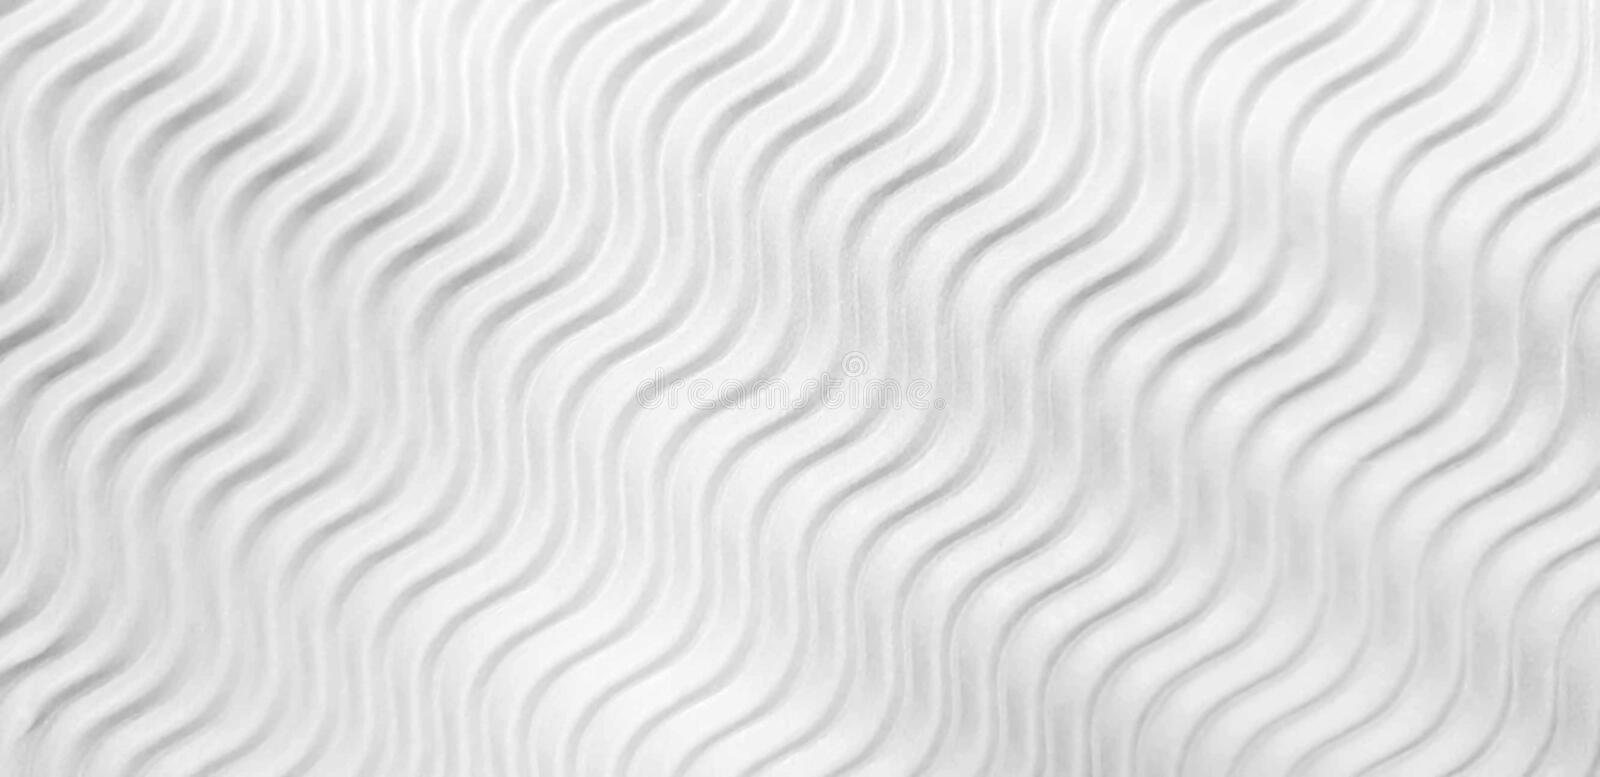 White wave Corrugated Cardboard. Texture background vector illustration